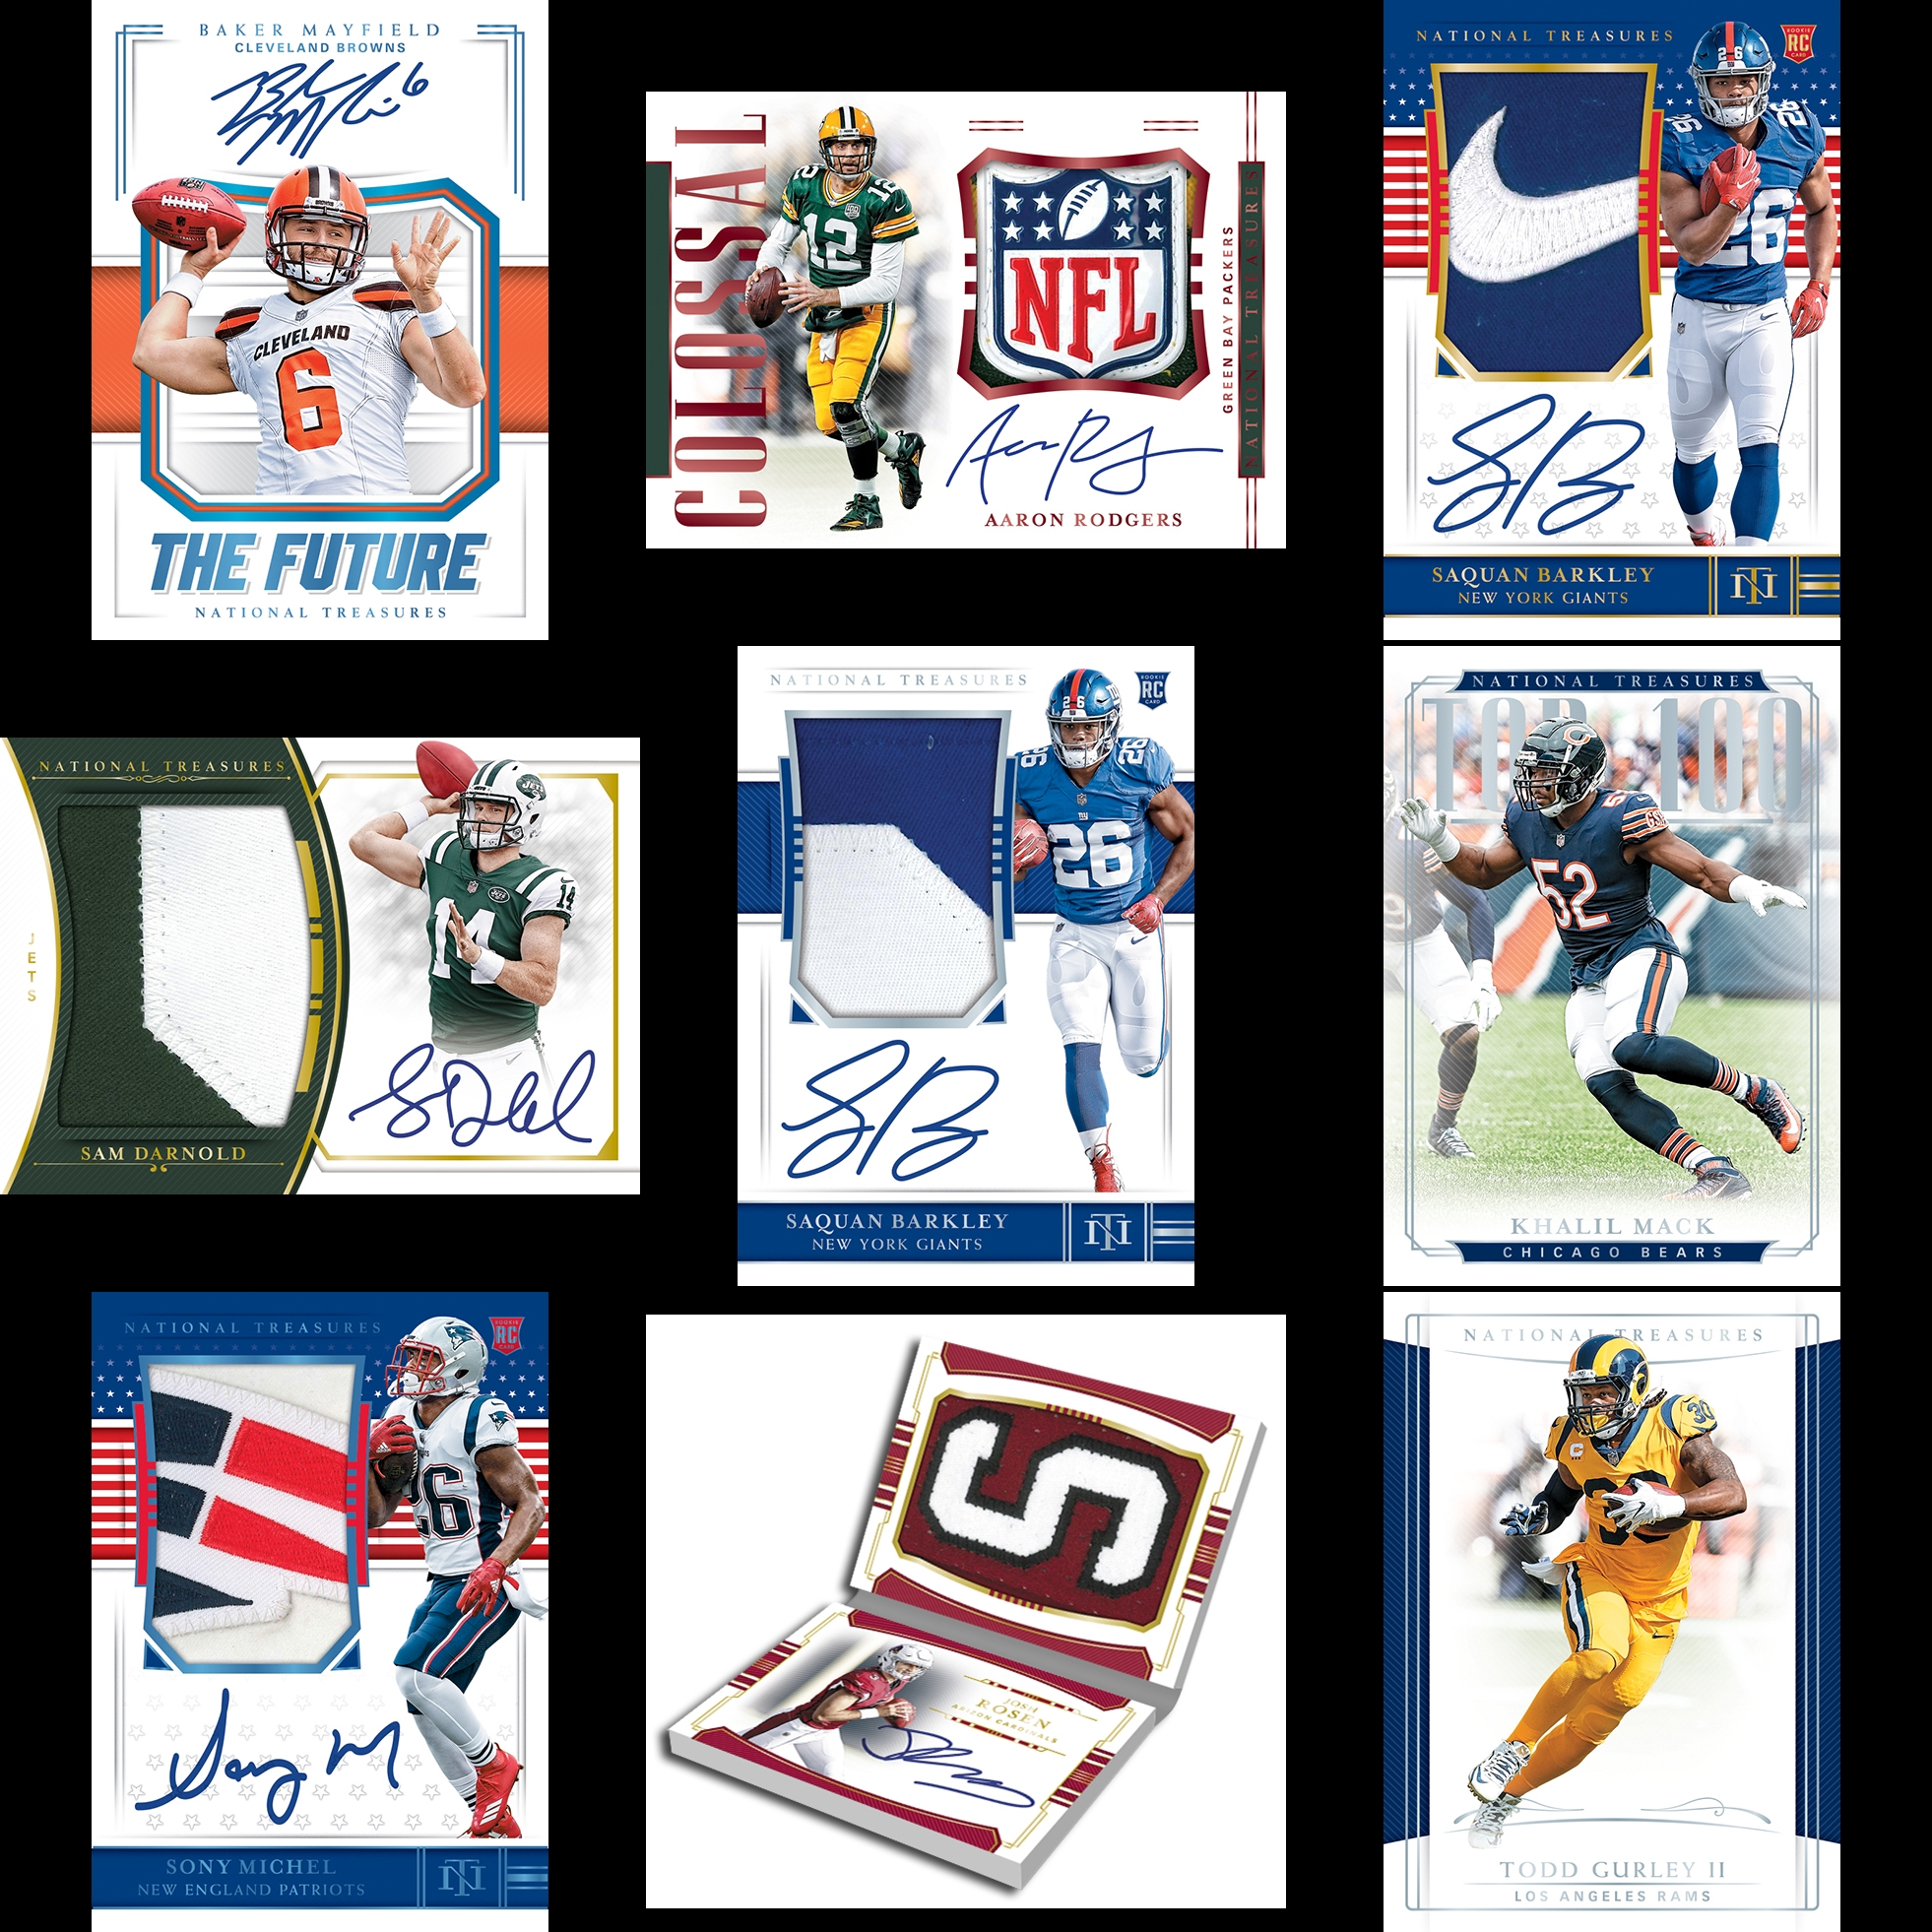 68c03c50c03 2018 National Treasures Football ✯Group Break Checklists